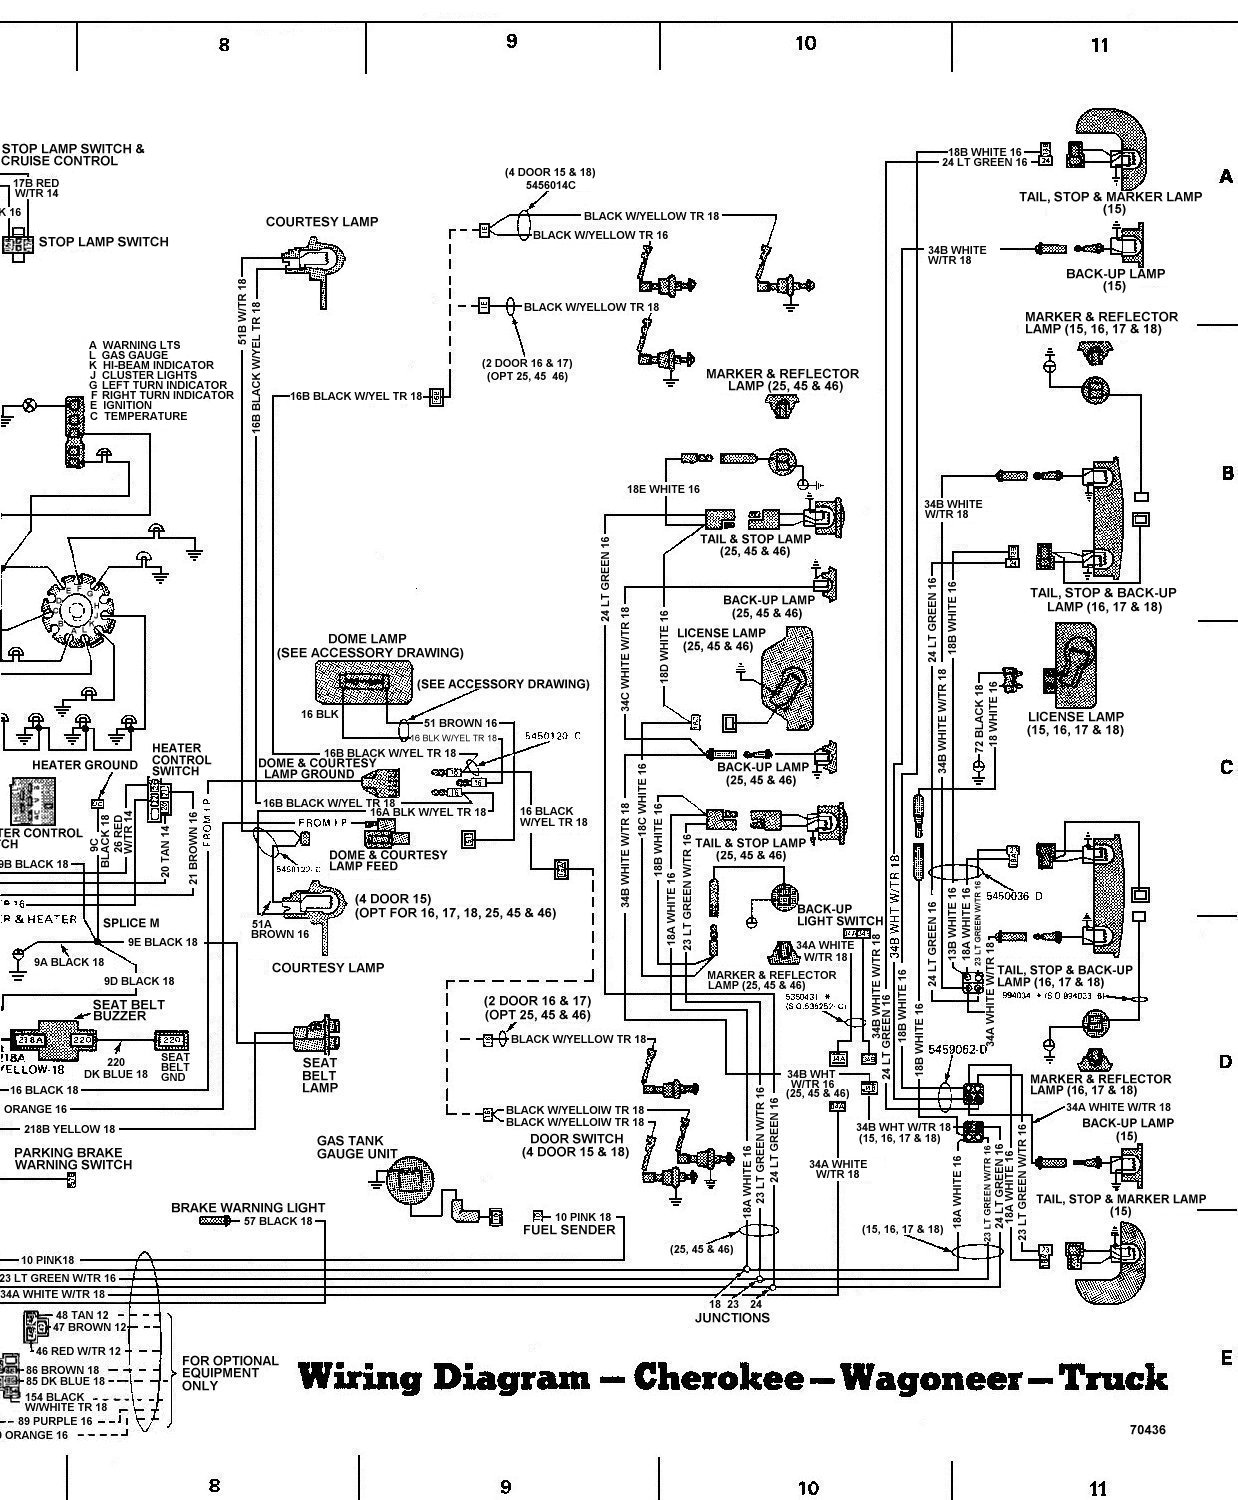 93 ford explorer wiring diagram pdf with Headlight Relay Switch Location 1996 on 2002 Ford Escape Shift Linkage Diagram further Ram D150 Wiring Diagram For 1991 moreover 32261 2004 Xl7 Service Engine Soon Light furthermore Headlight Relay Switch Location 1996 as well 5rmgr Ford Ranger Went One Morning Start 1998 Ford Ranger.